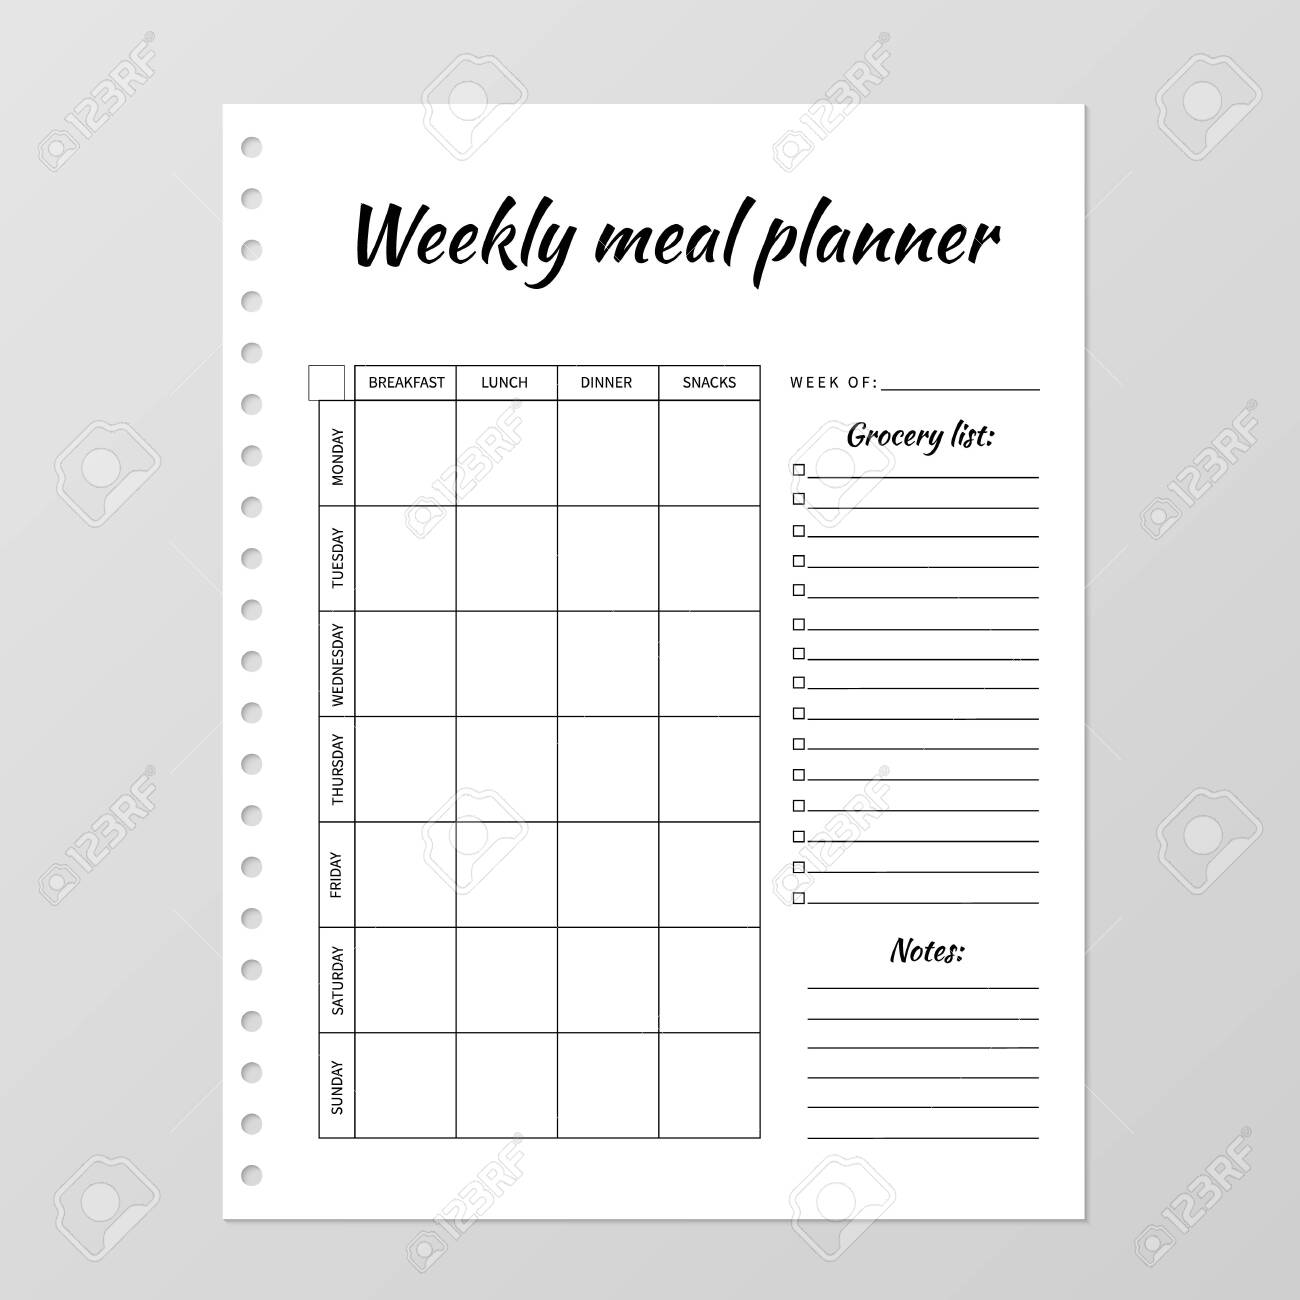 40 Weekly Meal Planning Templates ᐅ Templatelab 4